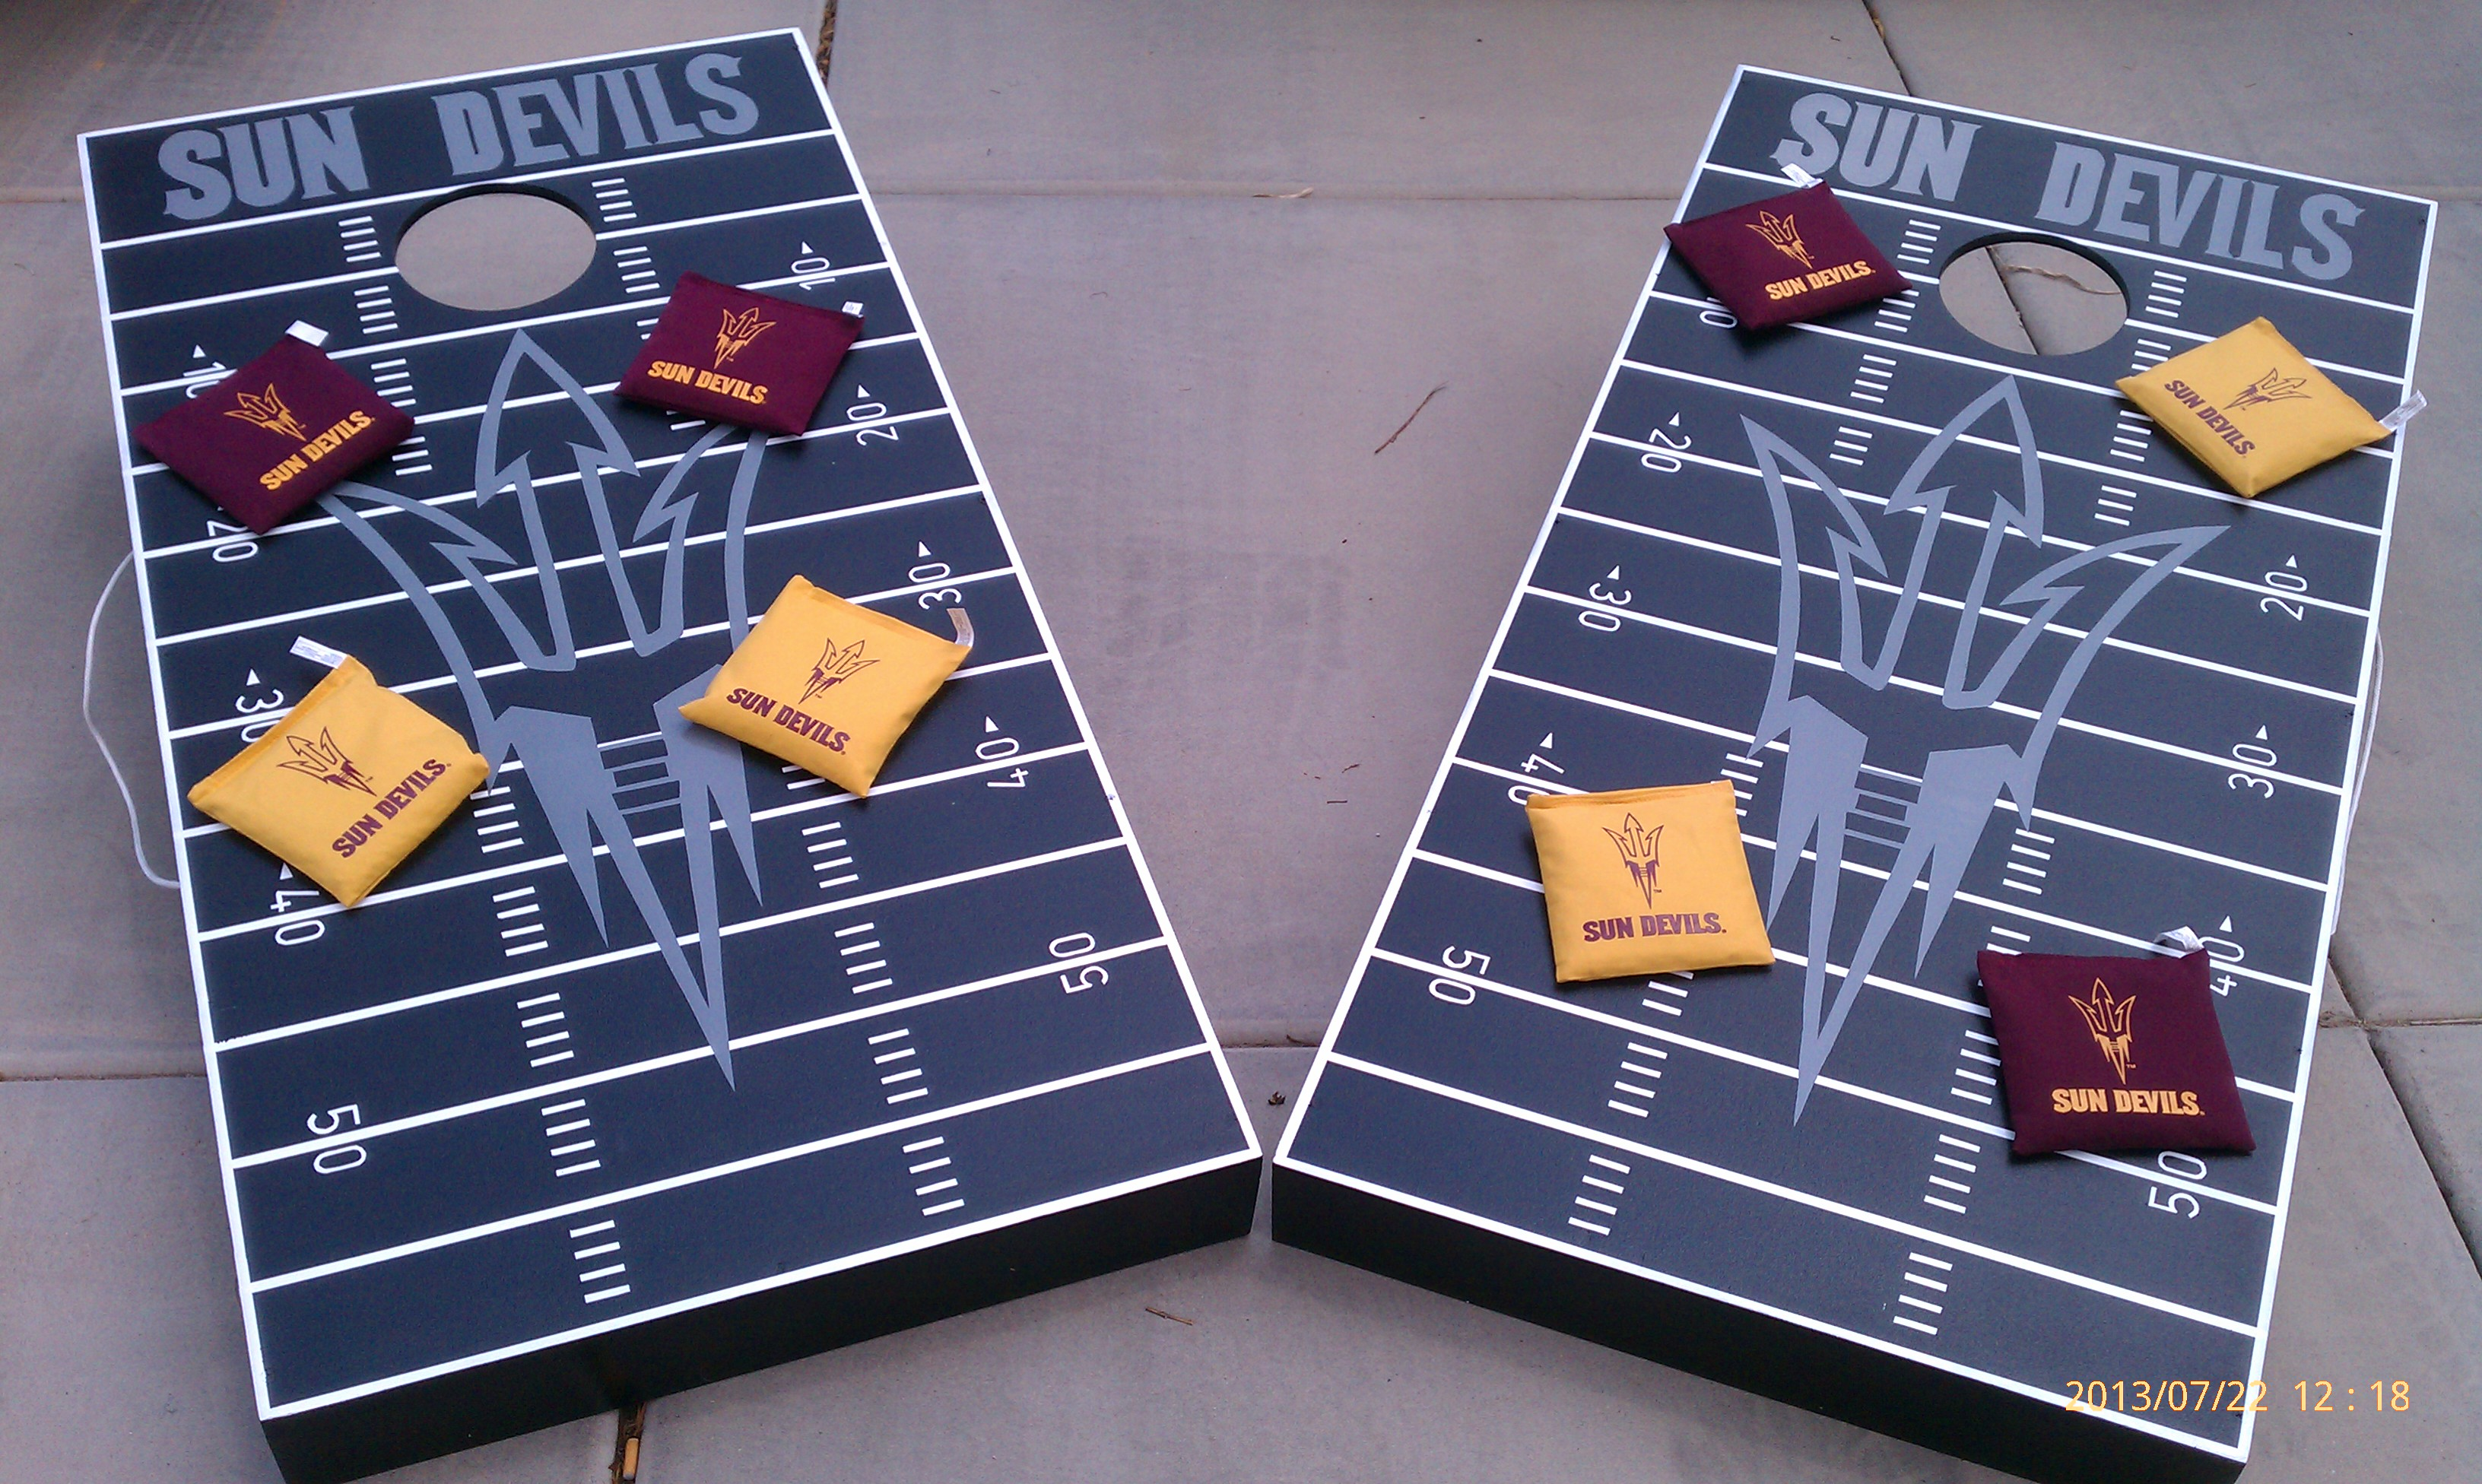 bag toss, cornhole, bean bag toss boards, sun devils, custom boards